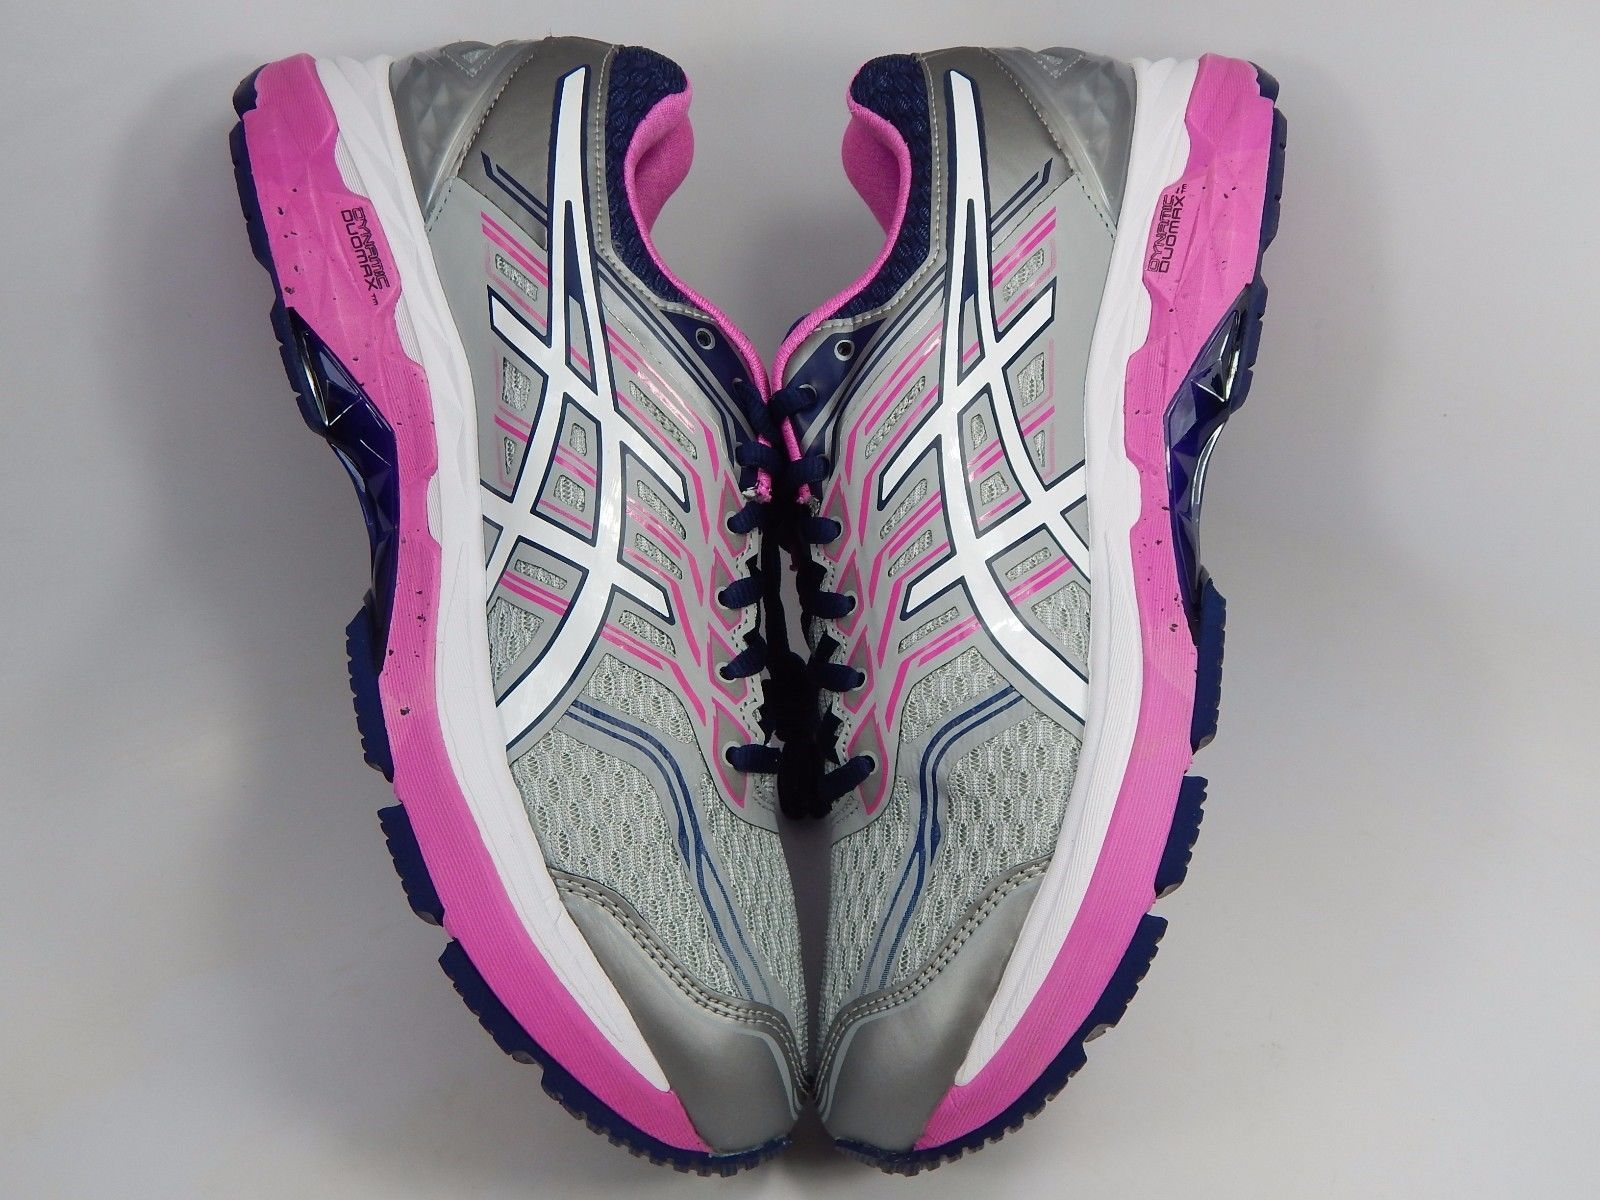 Asics GT 2000 v 5 Women's Running Shoes Size US 11 M (B) EU 43.5 Silver T757N